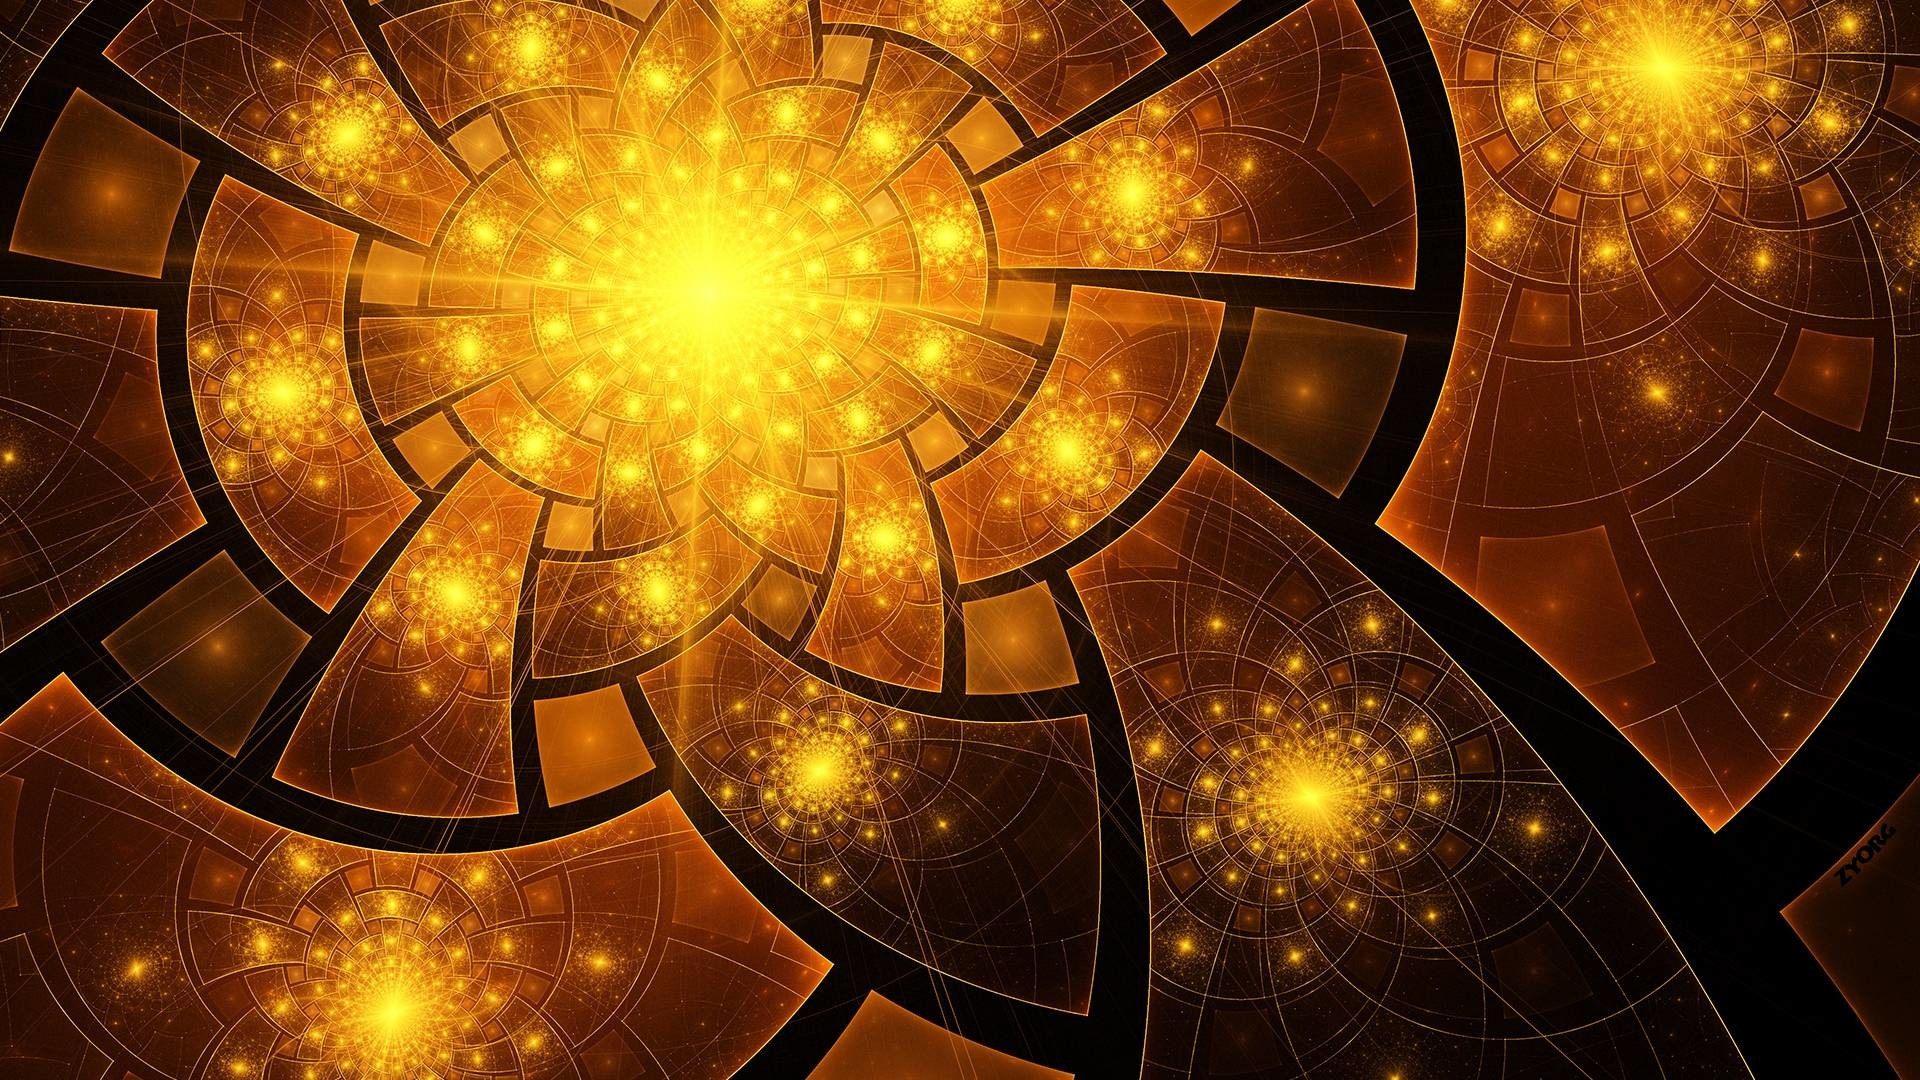 1920x1080 Hd Wallpapers For Your Desktop: Fractal Desktop Backgrounds (72+ Images